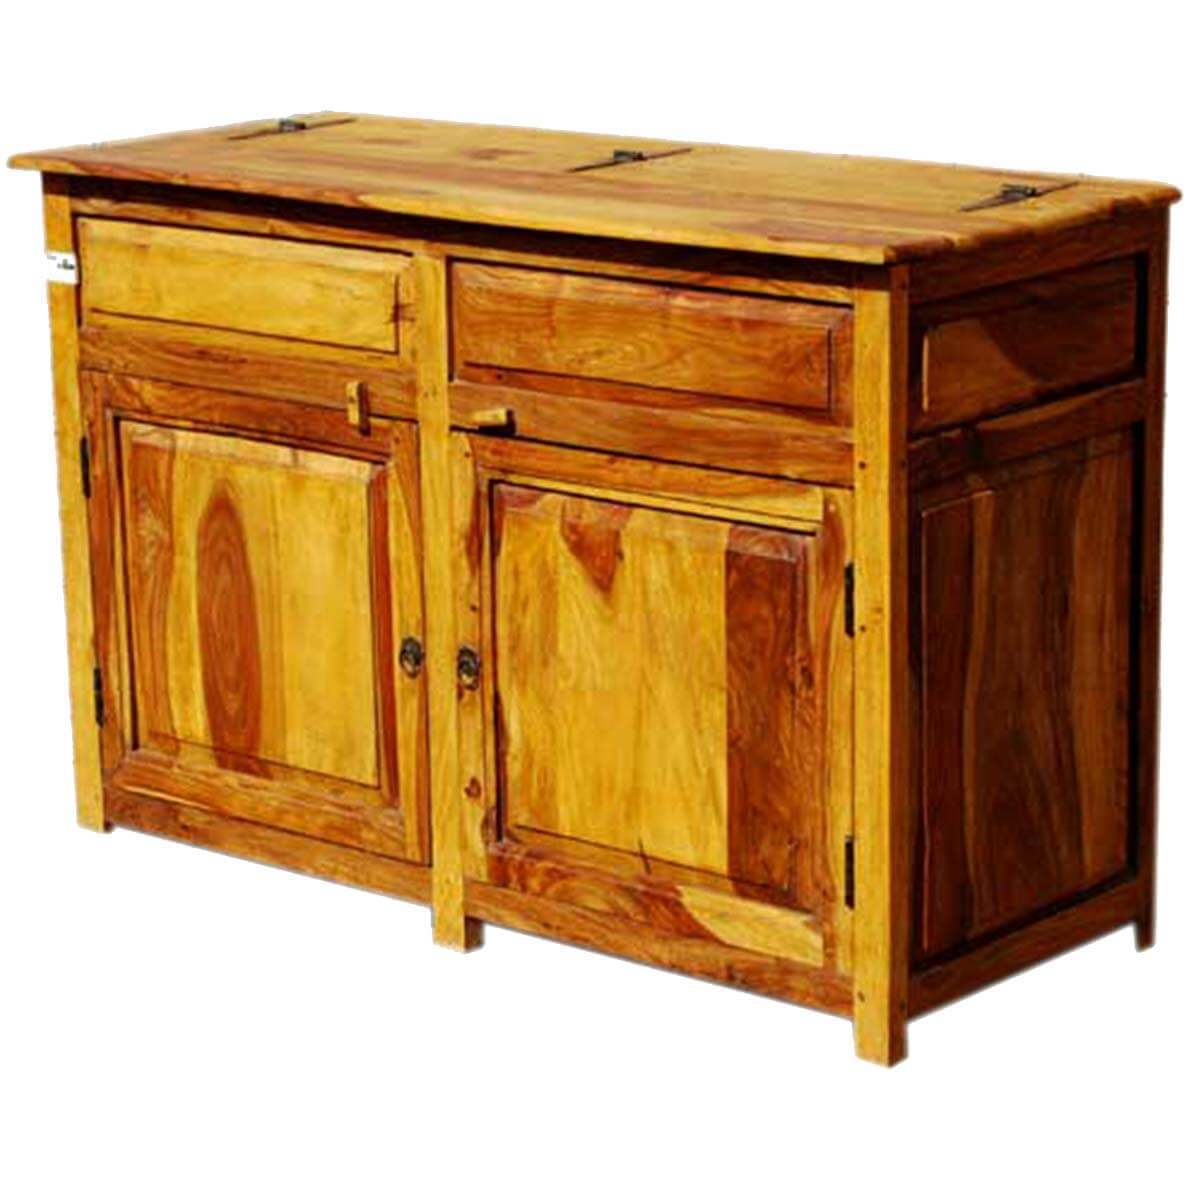 Marvelous photograph of Dallas Ranch Solid Wood 2 Door Rustic Kitchen Storage Buffet Cabinet with #380F03 color and 1200x1200 pixels